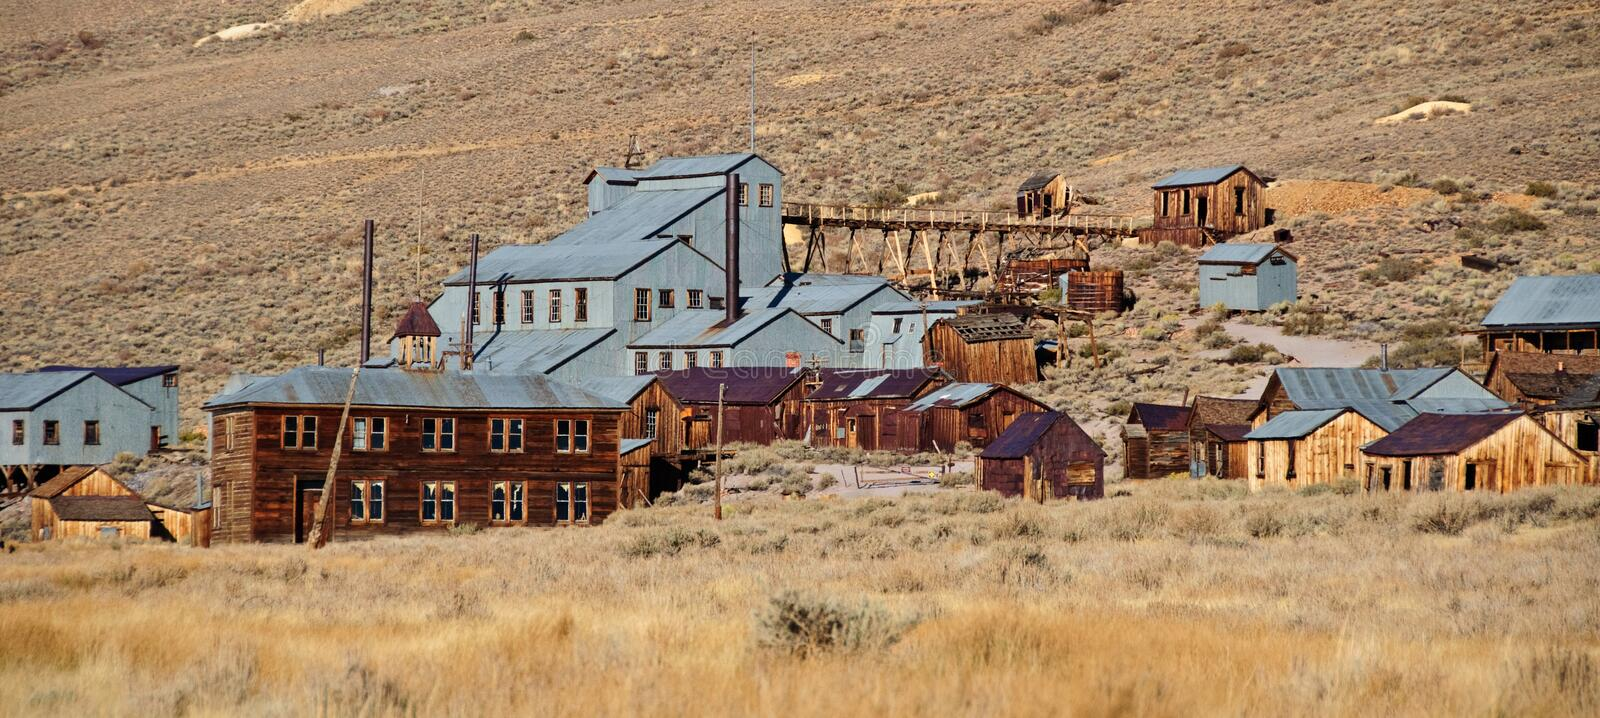 Old mining ghost town in west america. Photo old mining ghost town in west america royalty free stock photo